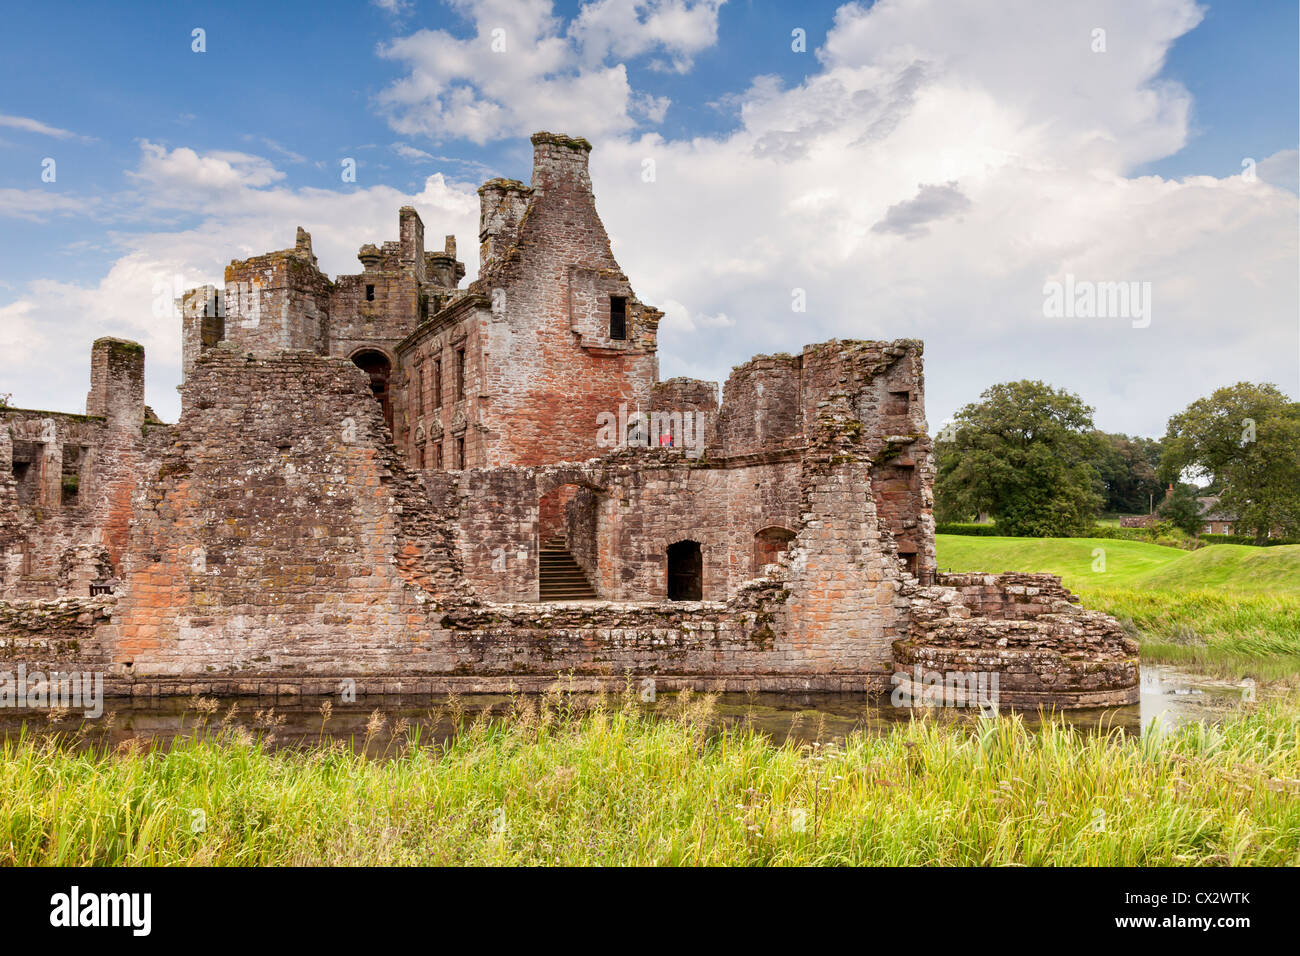 a view of caerlaverock castle clearly showing the house inside the defensive walls a typically scottish castle design